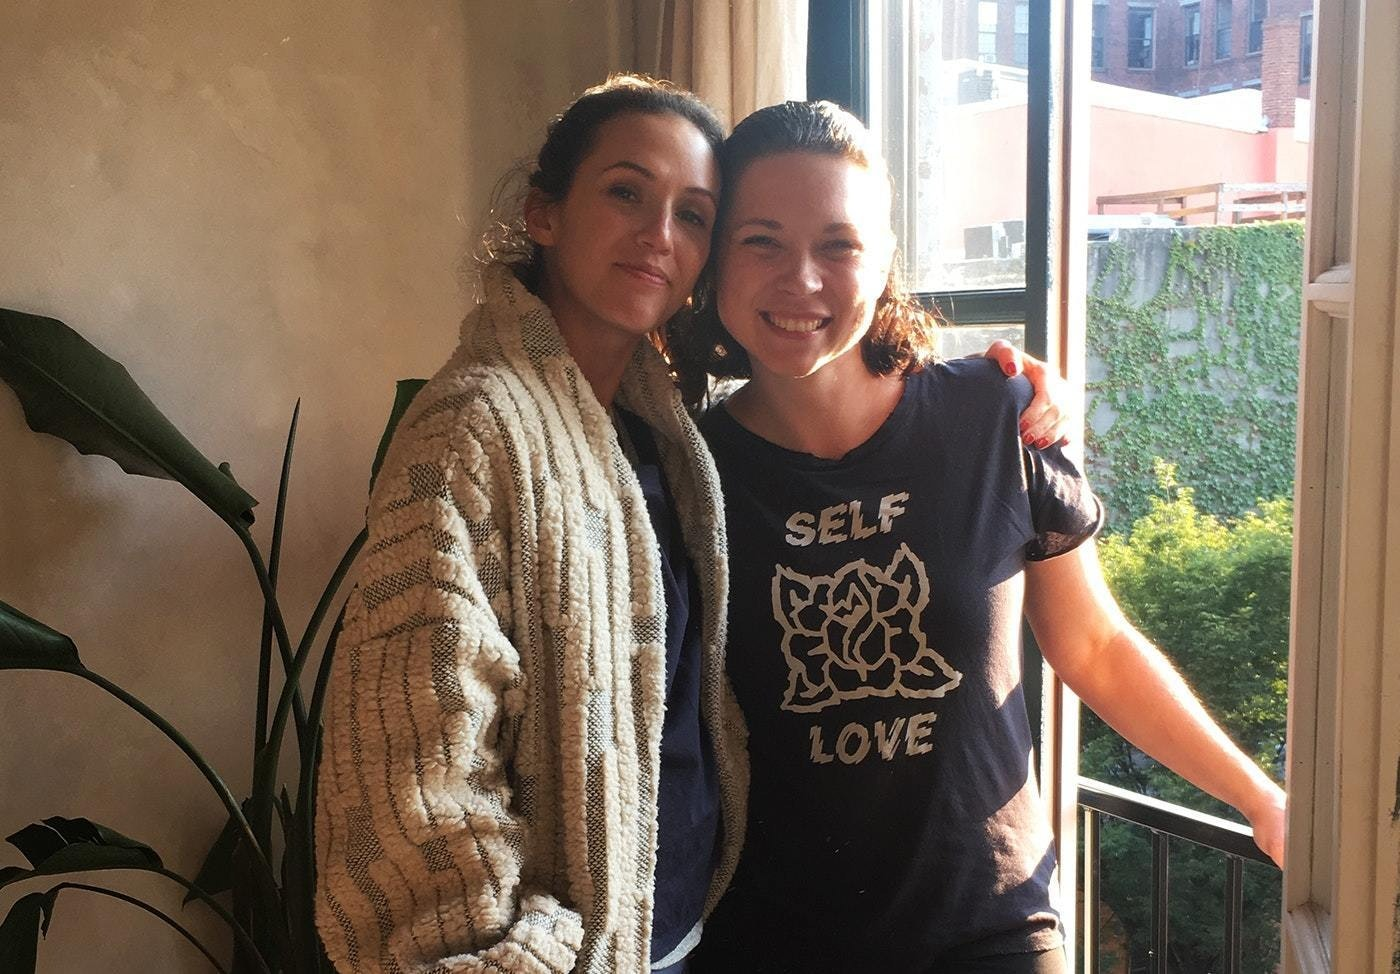 317b8e8fa9 Find What Feels Good (FWFG) is an online video subscription site featuring  yoga videos and lifestyle content from Adriene Mishler, an actress, yoga  teacher, ...